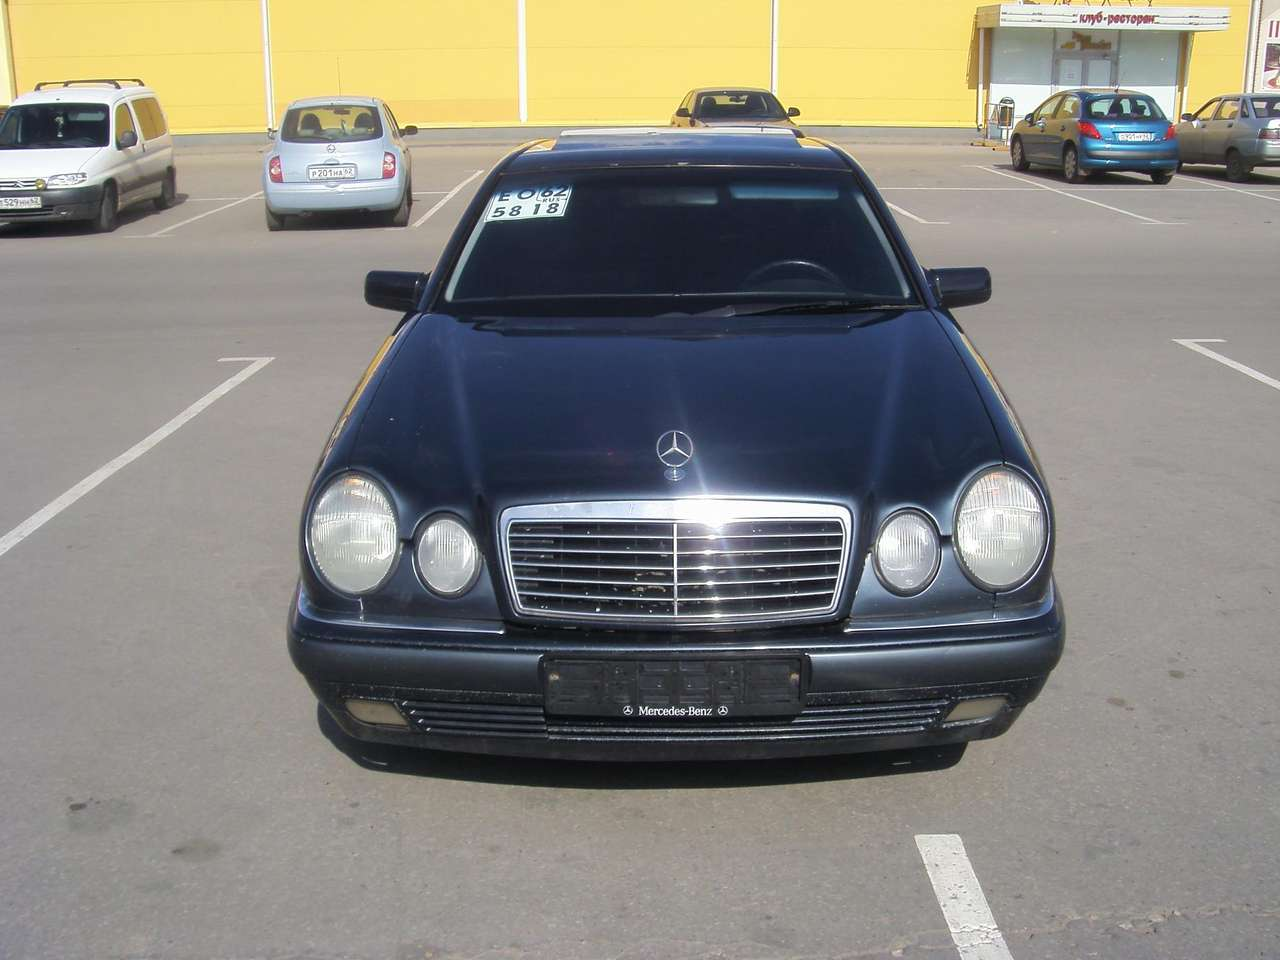 1999 mercedes benz e class photos 2 4 gasoline fr or rr automatic for sale. Black Bedroom Furniture Sets. Home Design Ideas